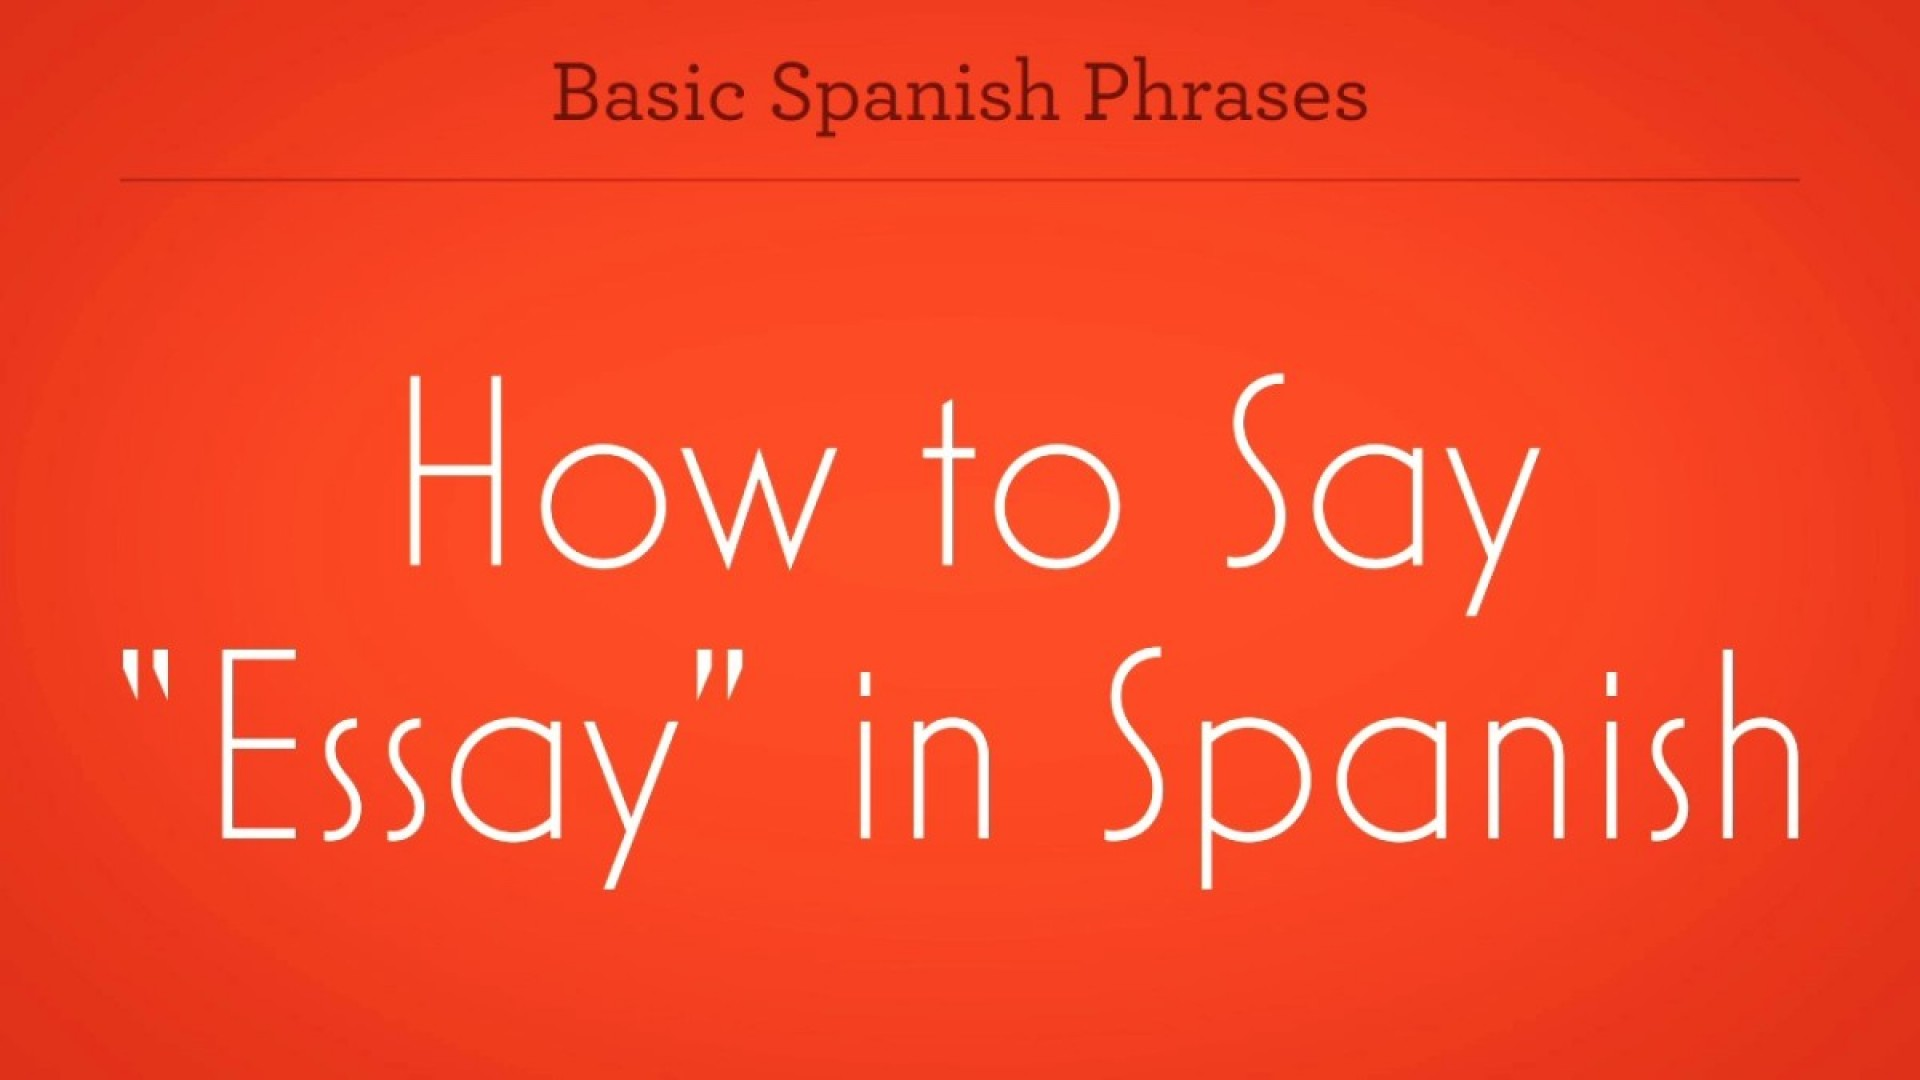 003 How Do You Say Essay In Spanish Example Zv To Promo Top U Persuasive 1920